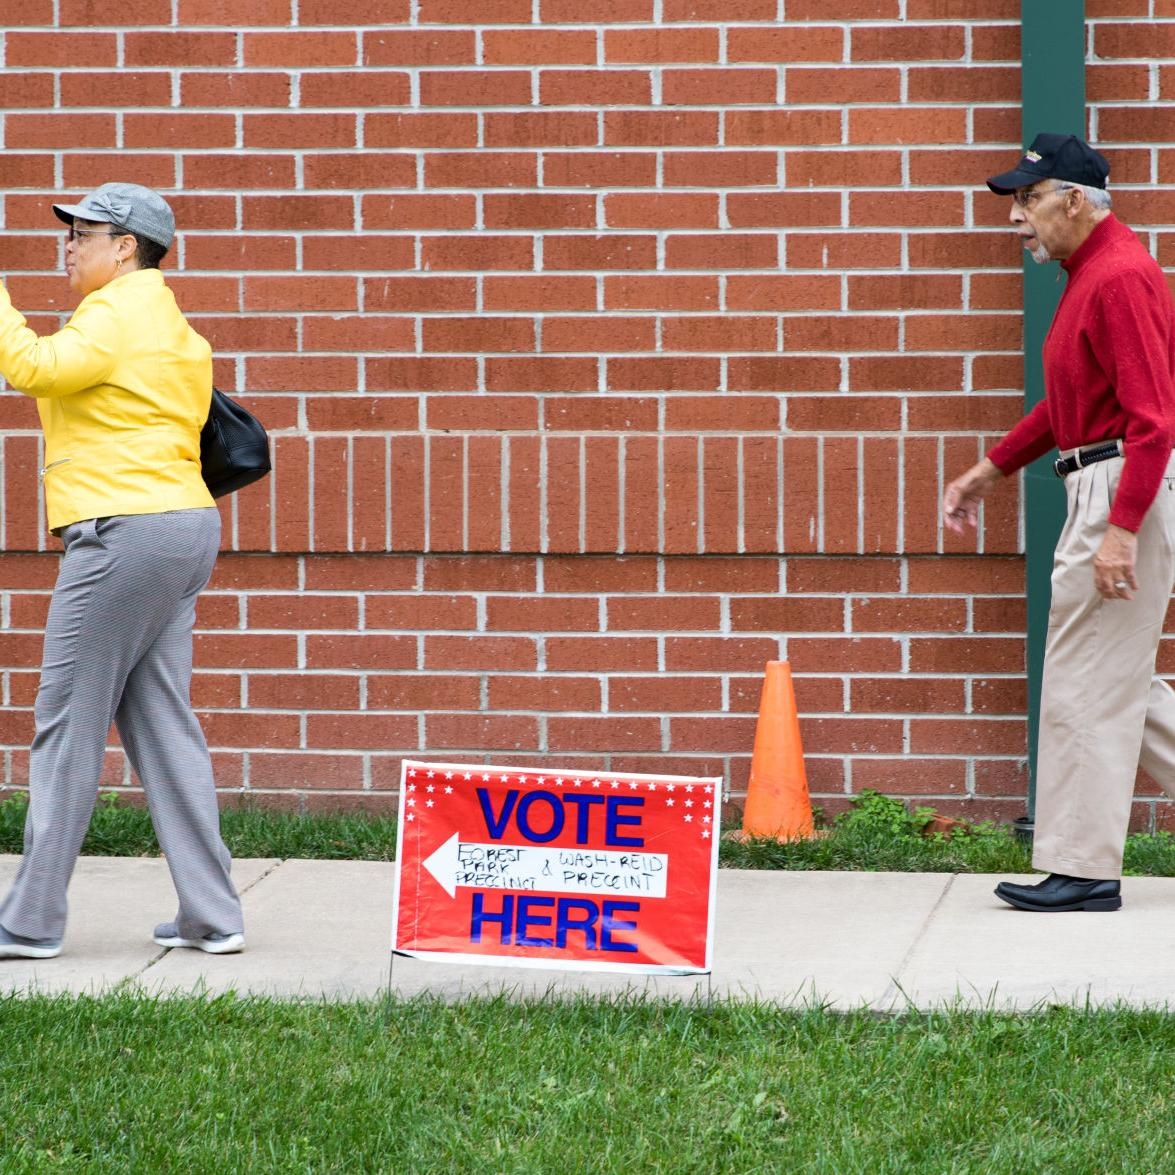 Early voting for the June 8 primary begins today